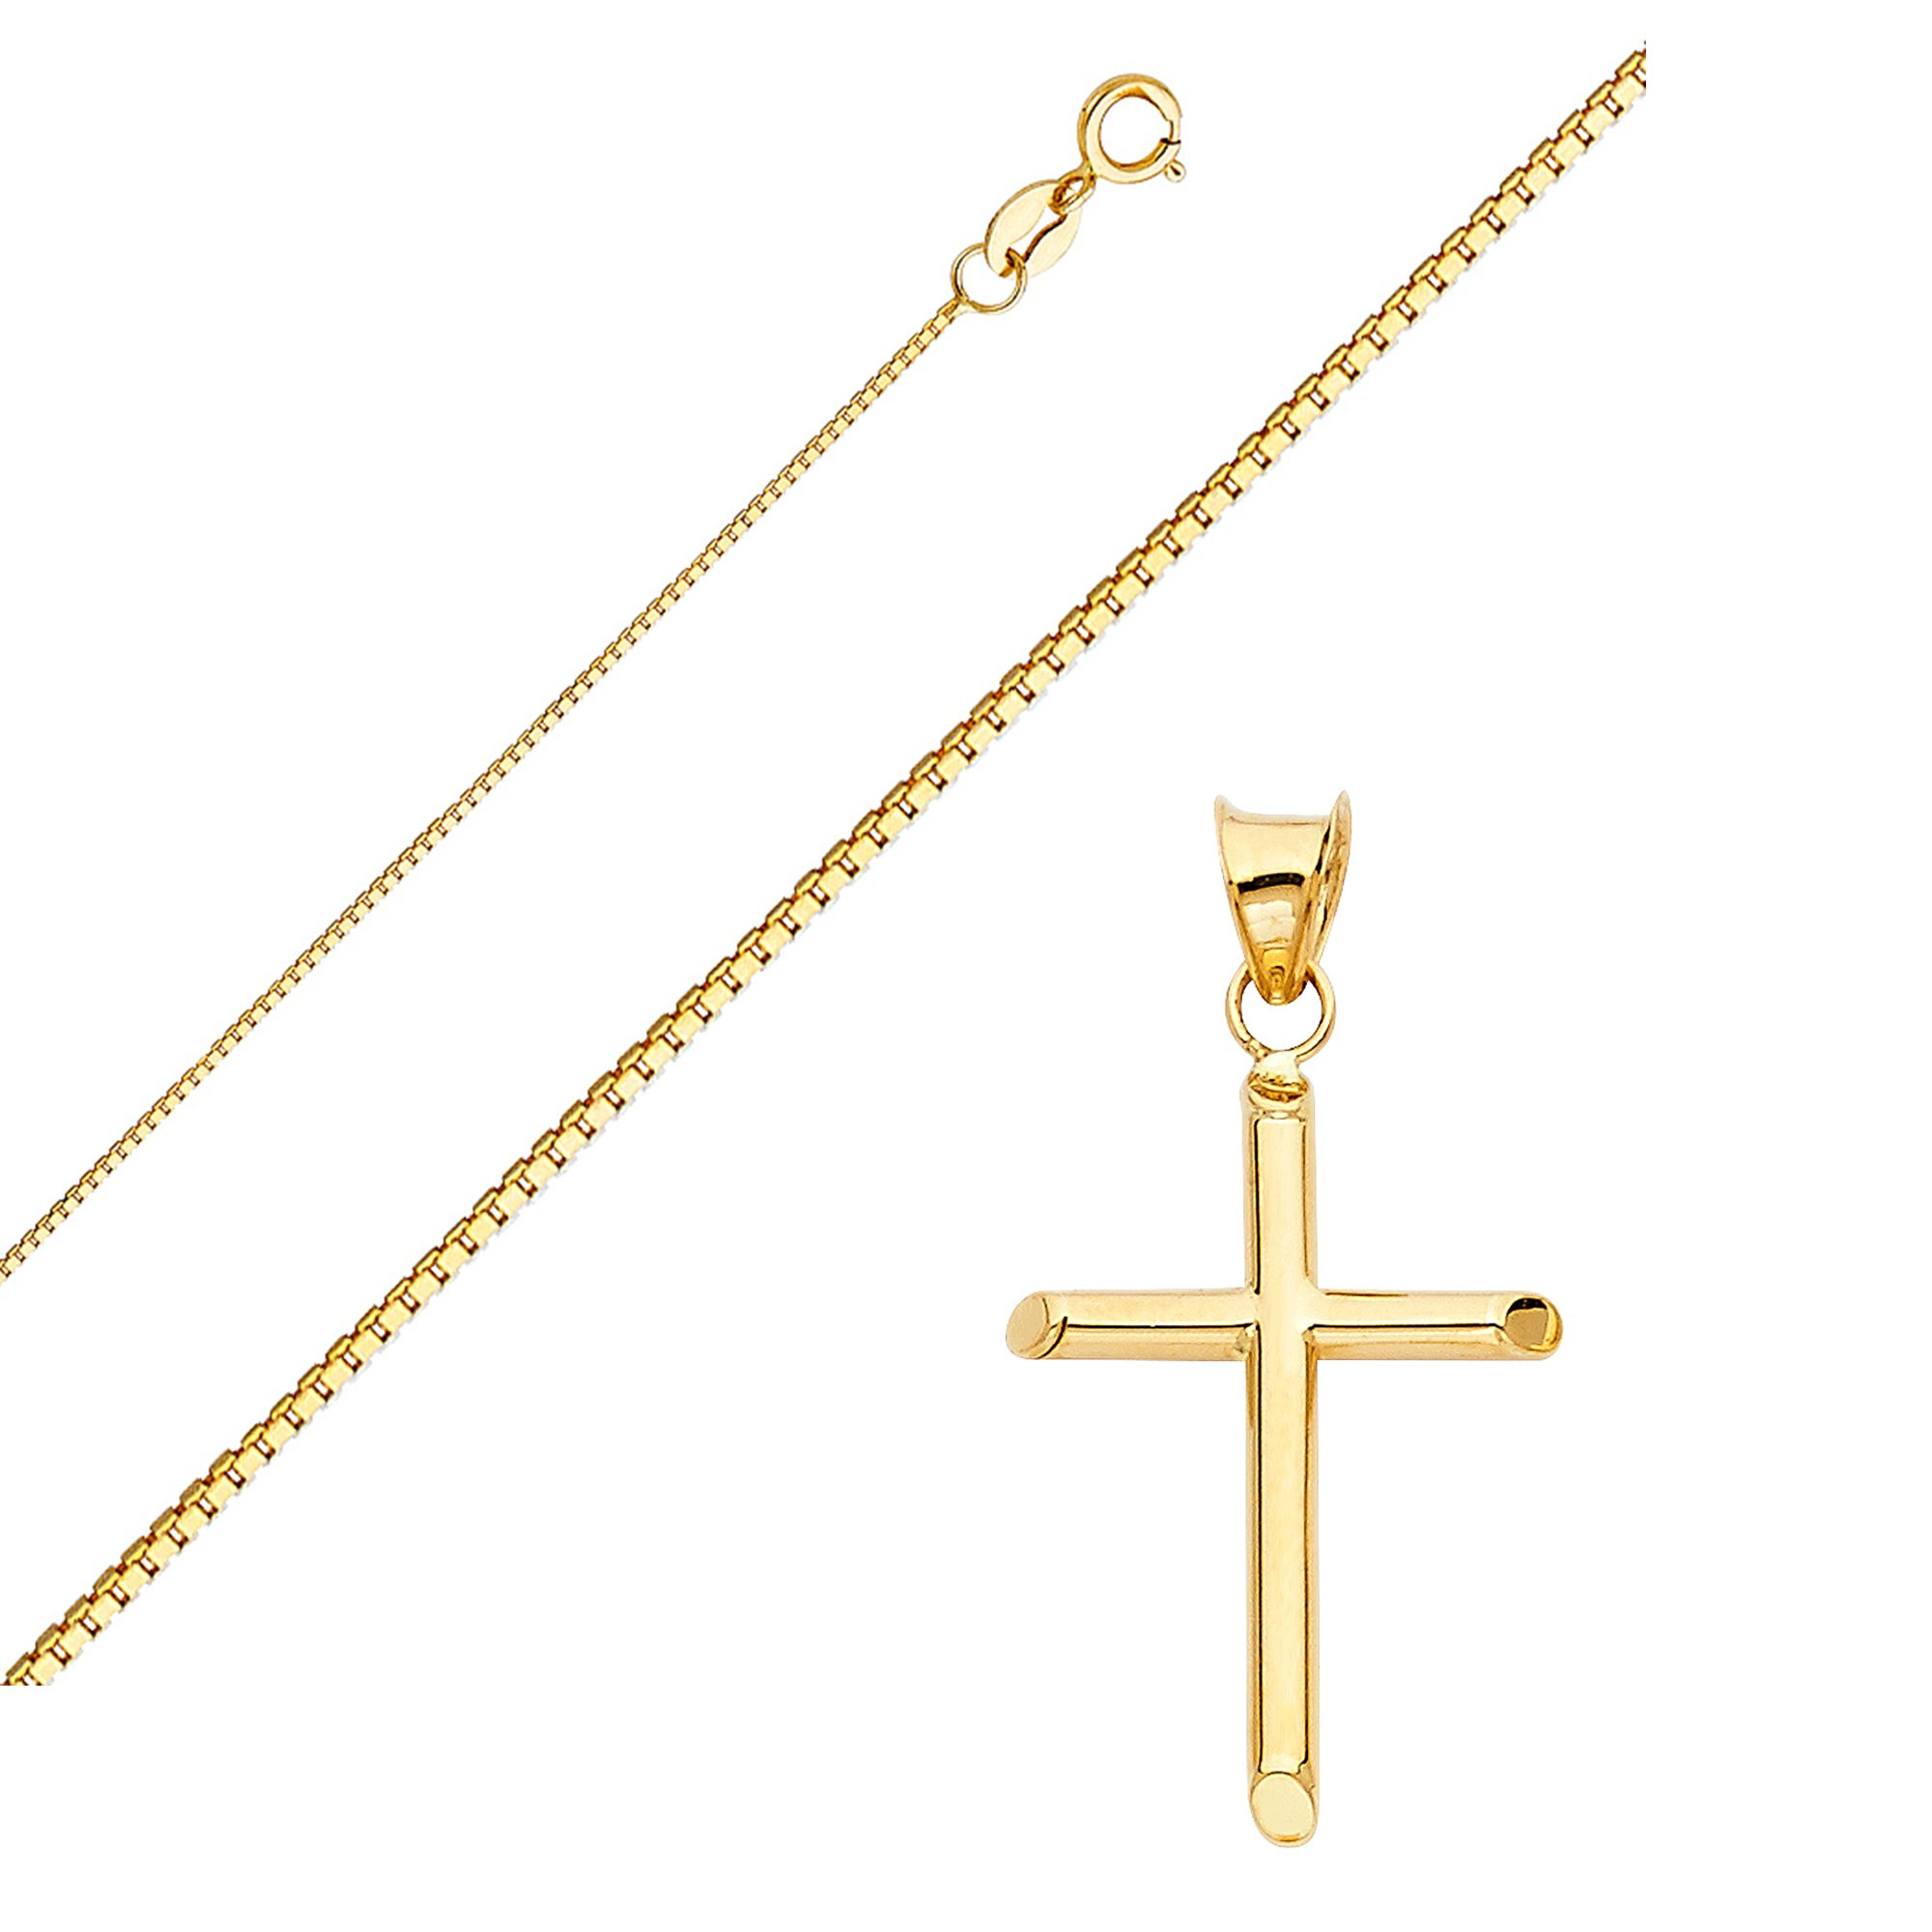 Solid 14K Gold Box Chain Cross Pendant Necklace - Choose Chain Length and Width (24.0, Box Chain - 0.8mm)